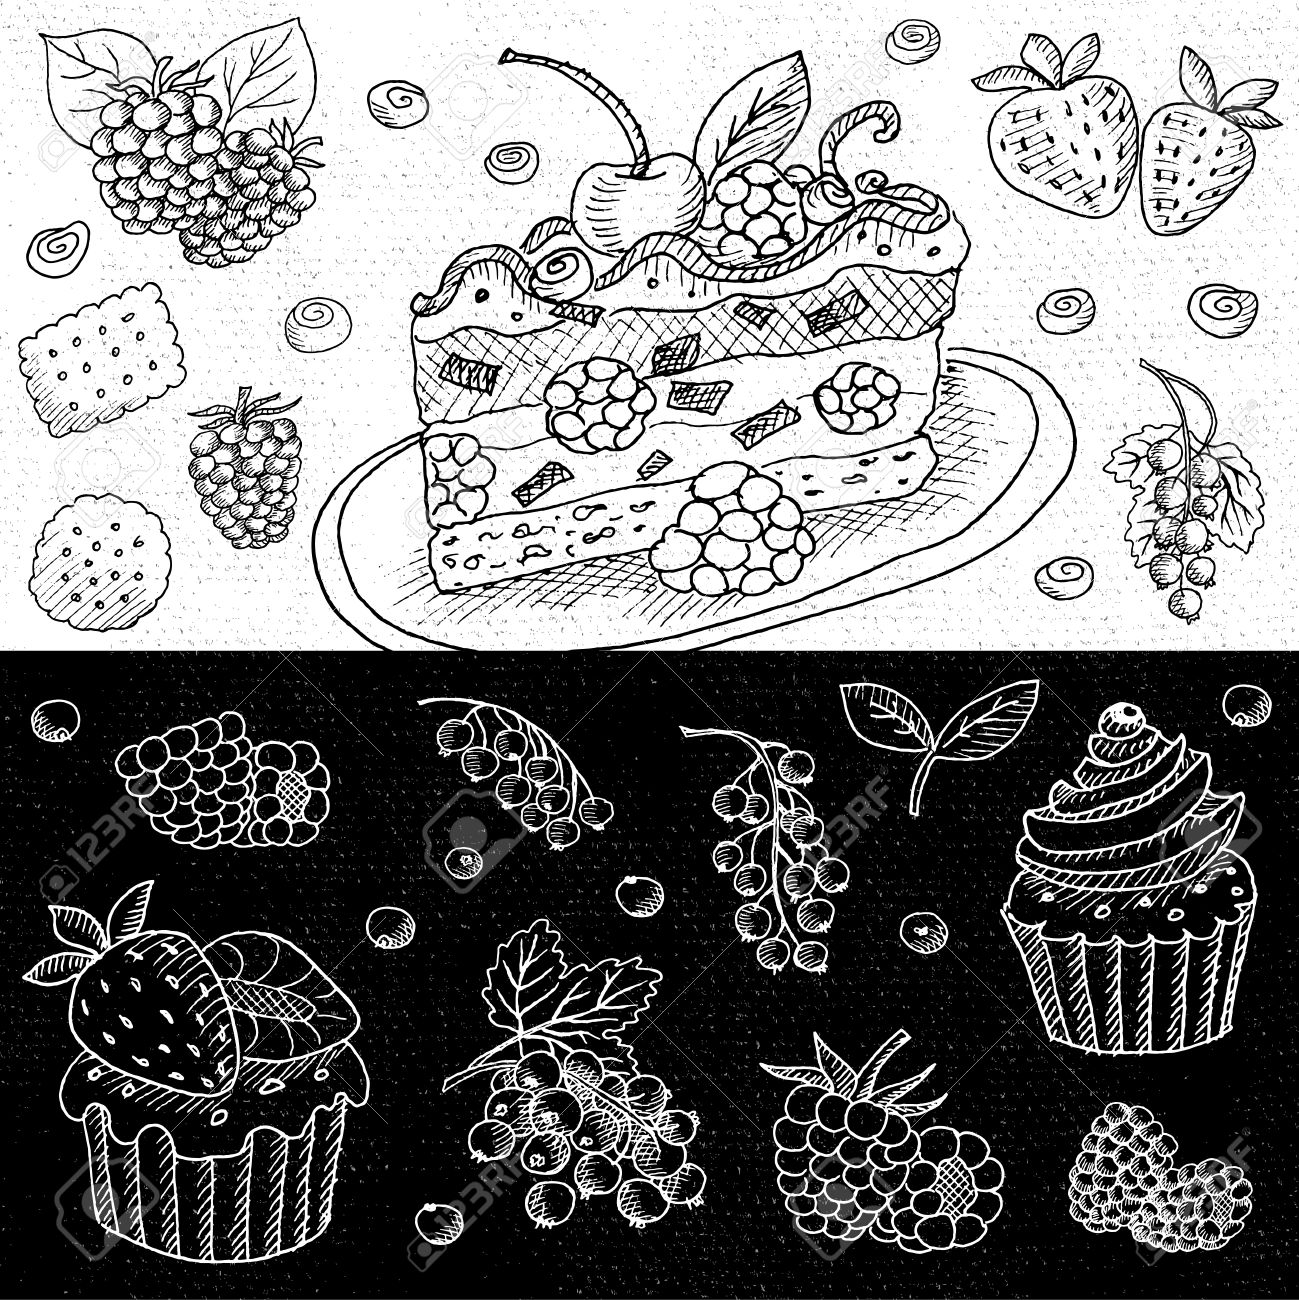 1299x1300 Set Of Chalk Hand Drawn, In Sketch Style, Food And Spices, Black